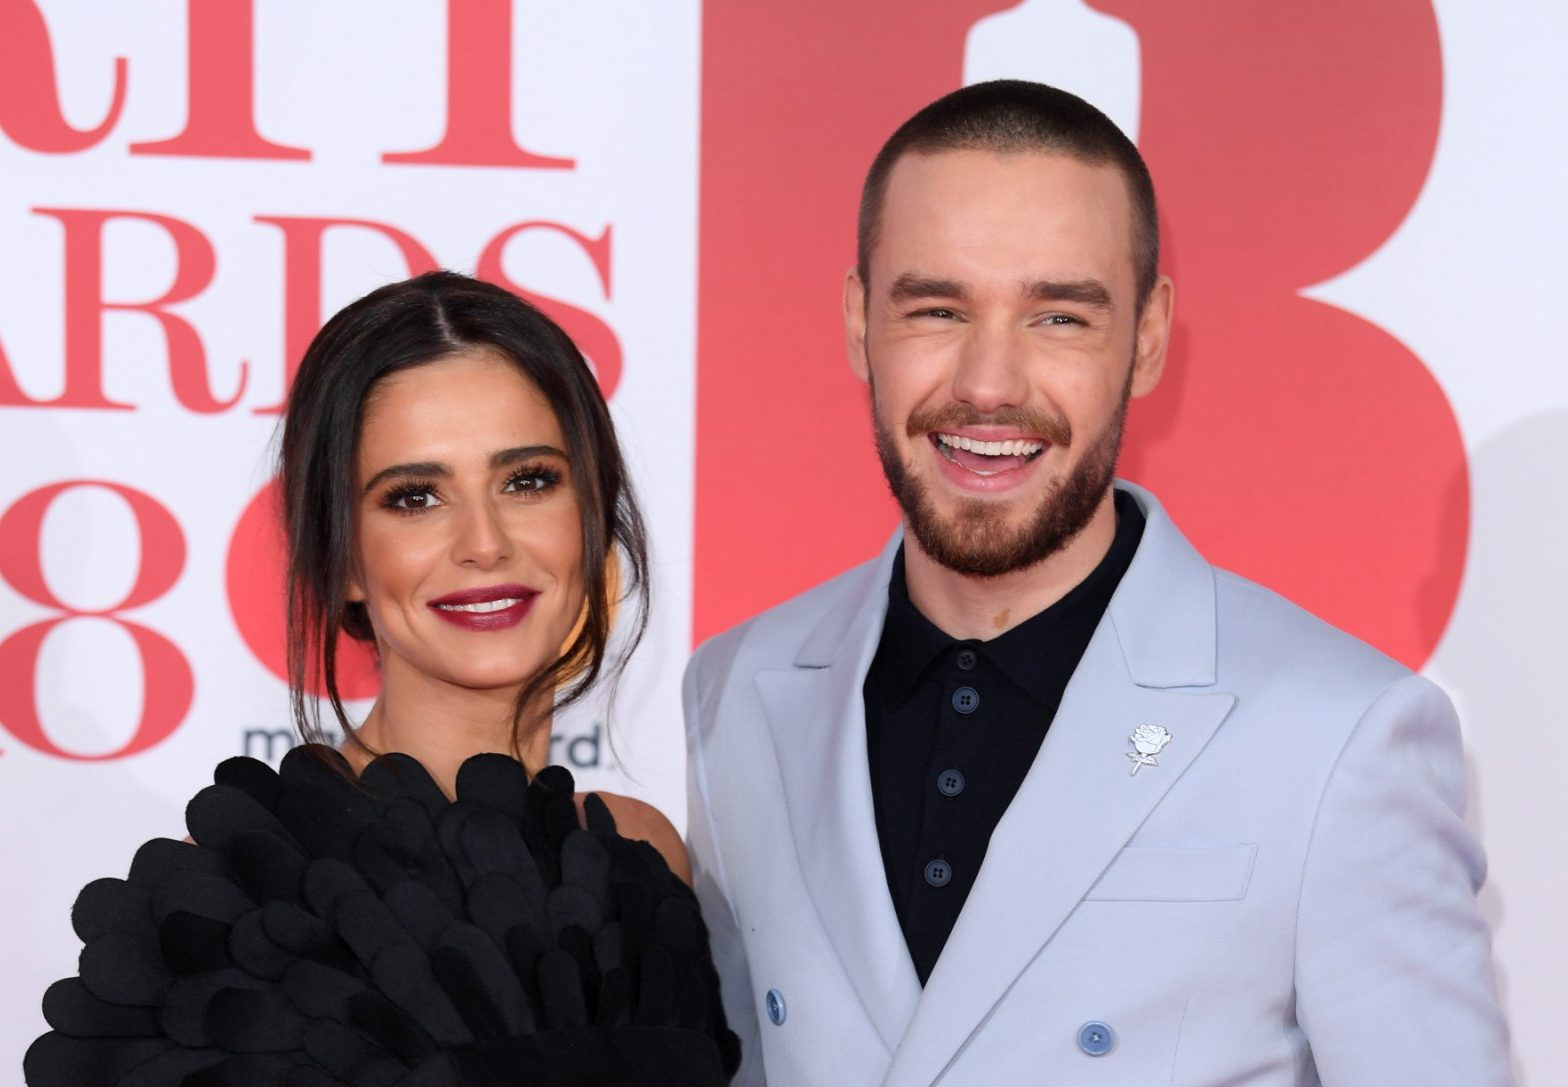 Cheryl and Liam Payne ignore split rumours as they walk the Brits red carpet hand in hand